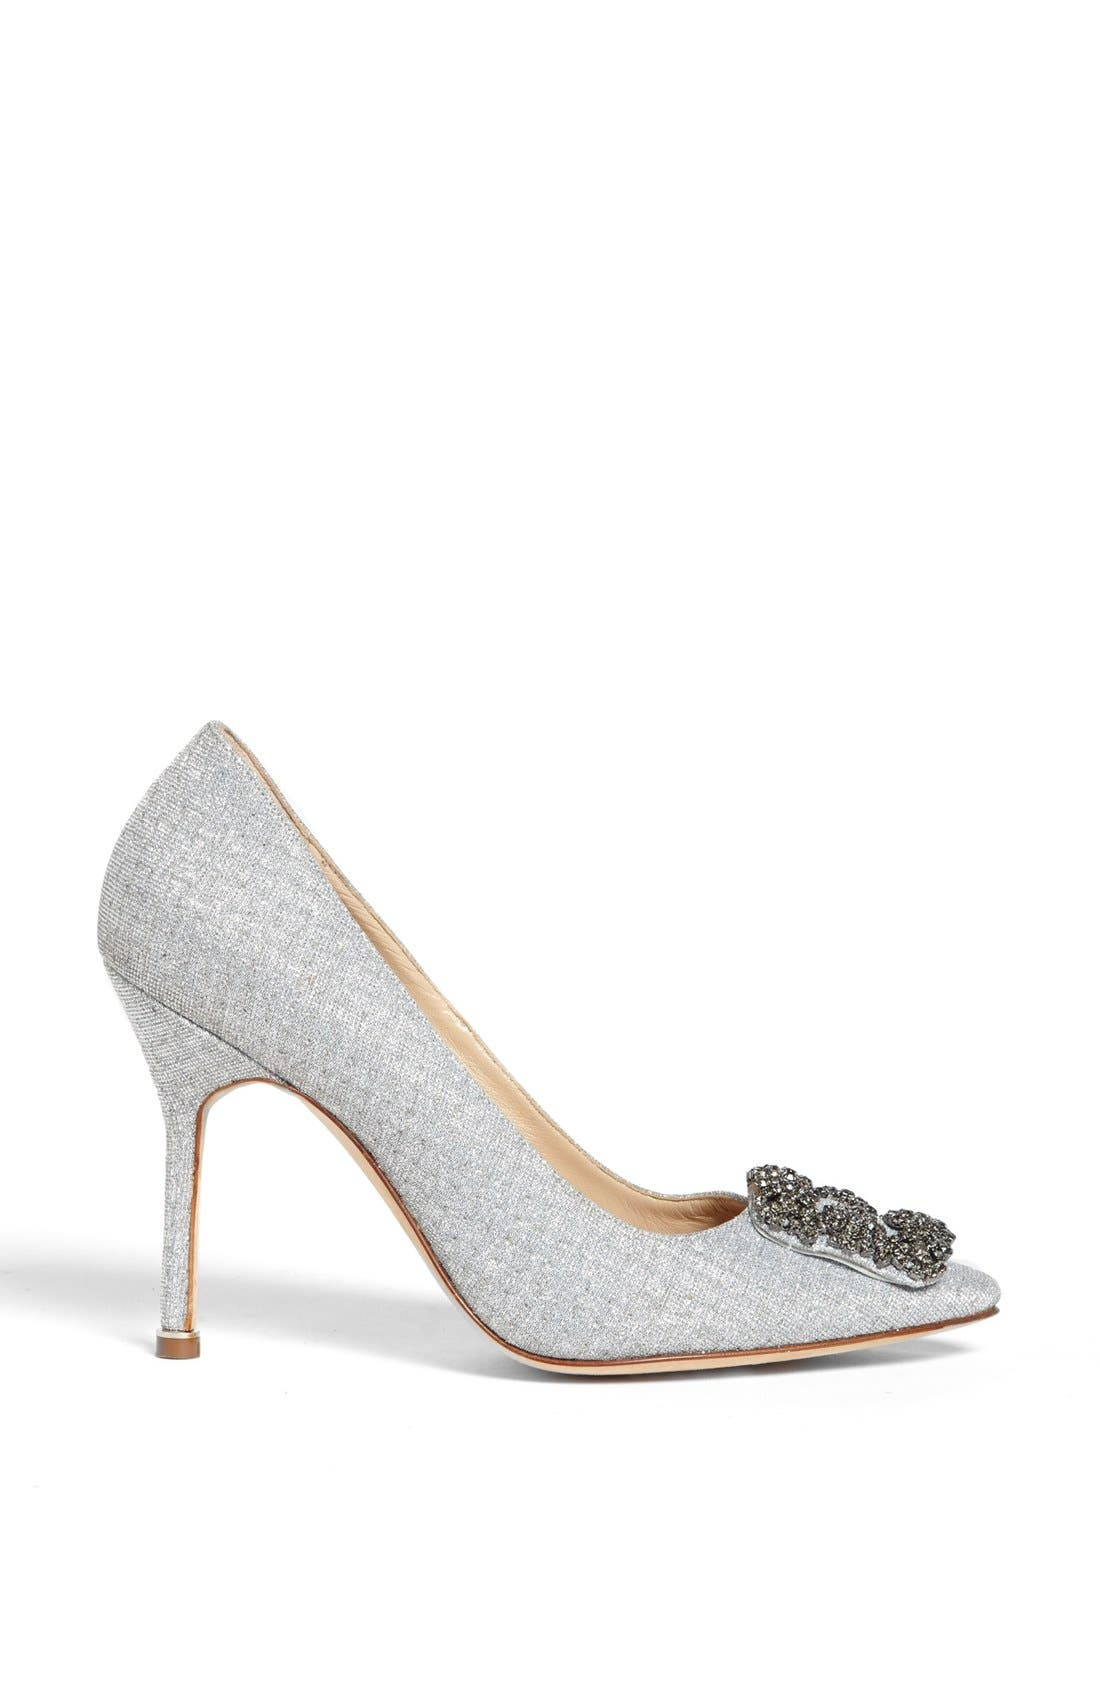 'Hangisi' Jeweled Pump,                             Alternate thumbnail 4, color,                             SILVER